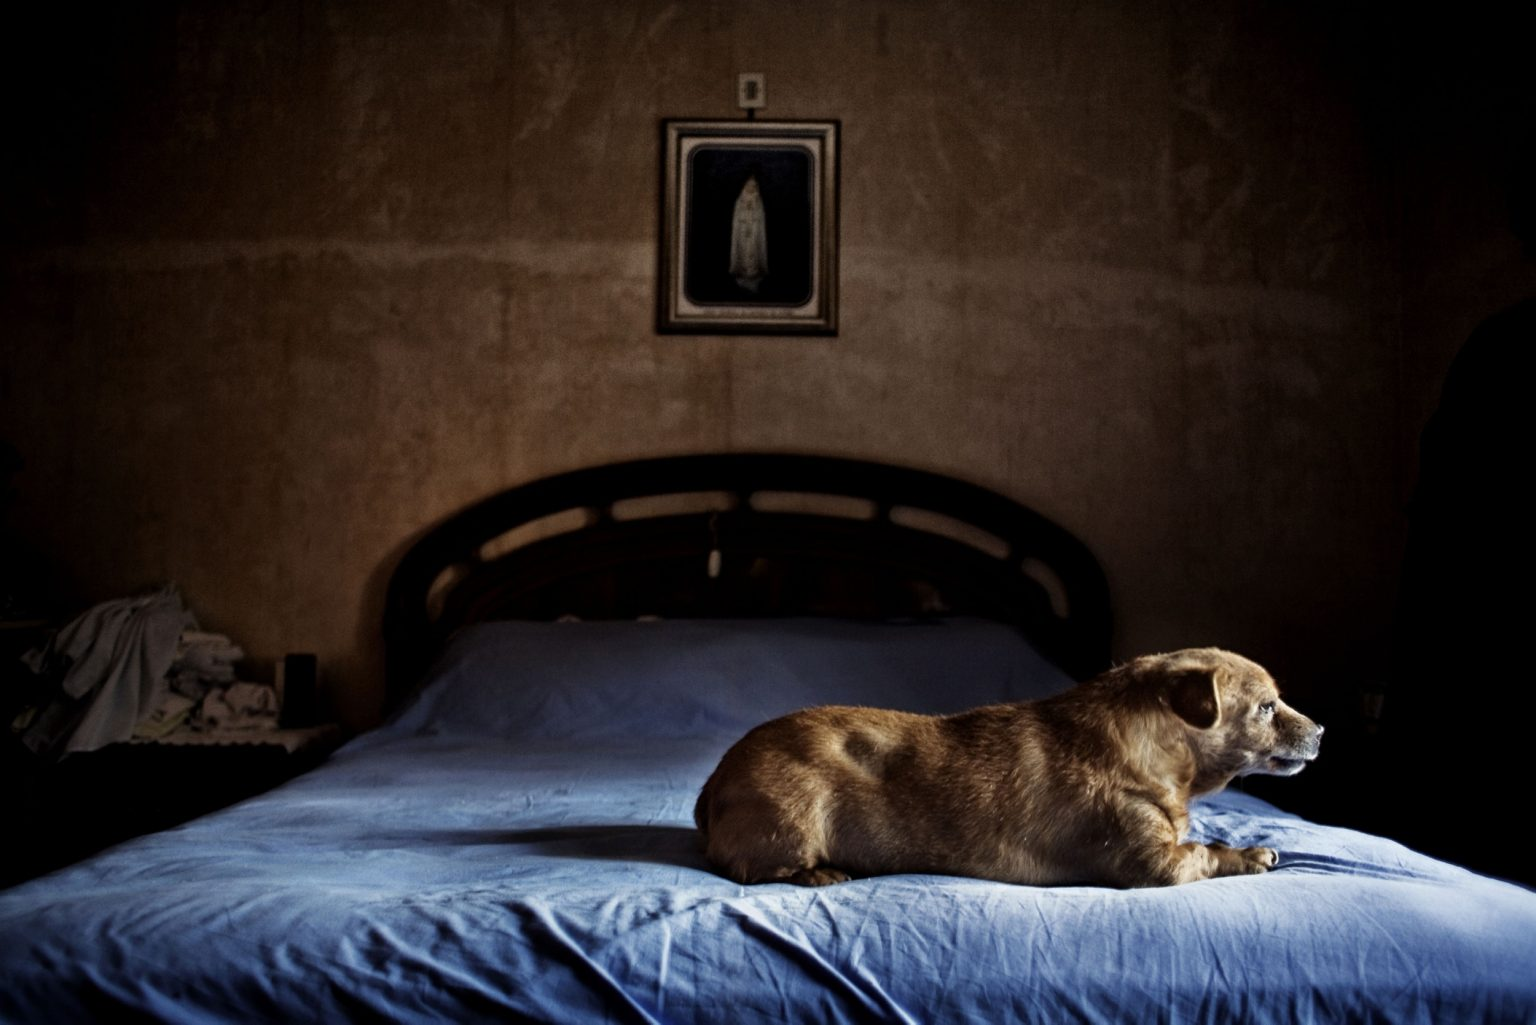 San Cesareo (Rome), June 2008 - The  dog of Angela, a girl suffering from a serious obesity